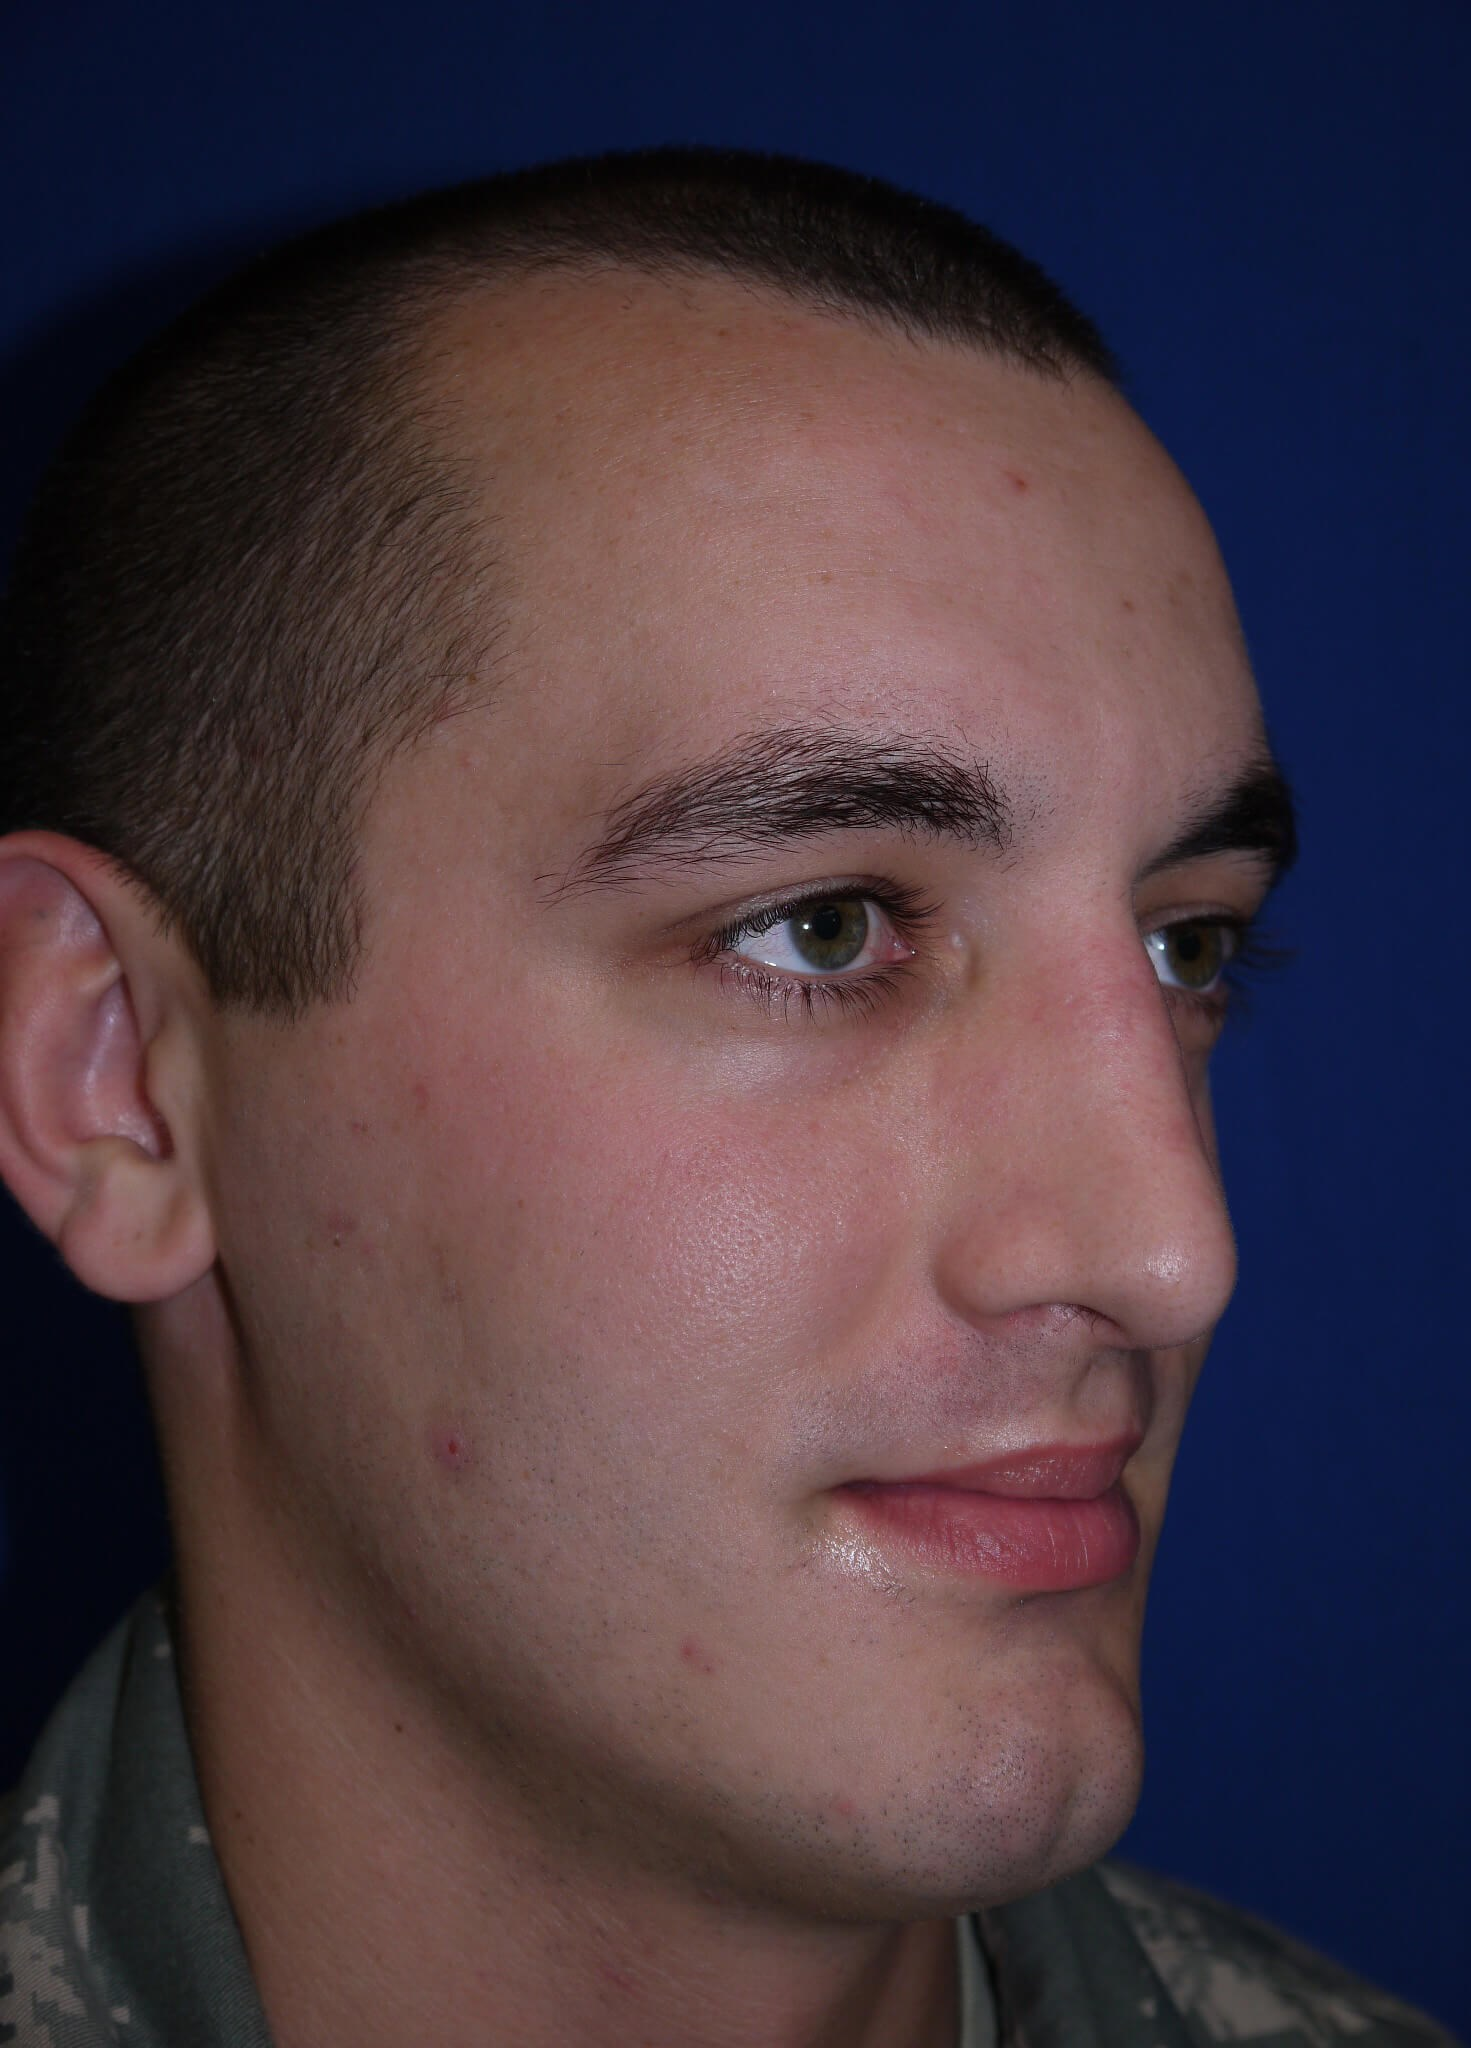 After rhinoplasty - Right Lateral View - Right Lateral View